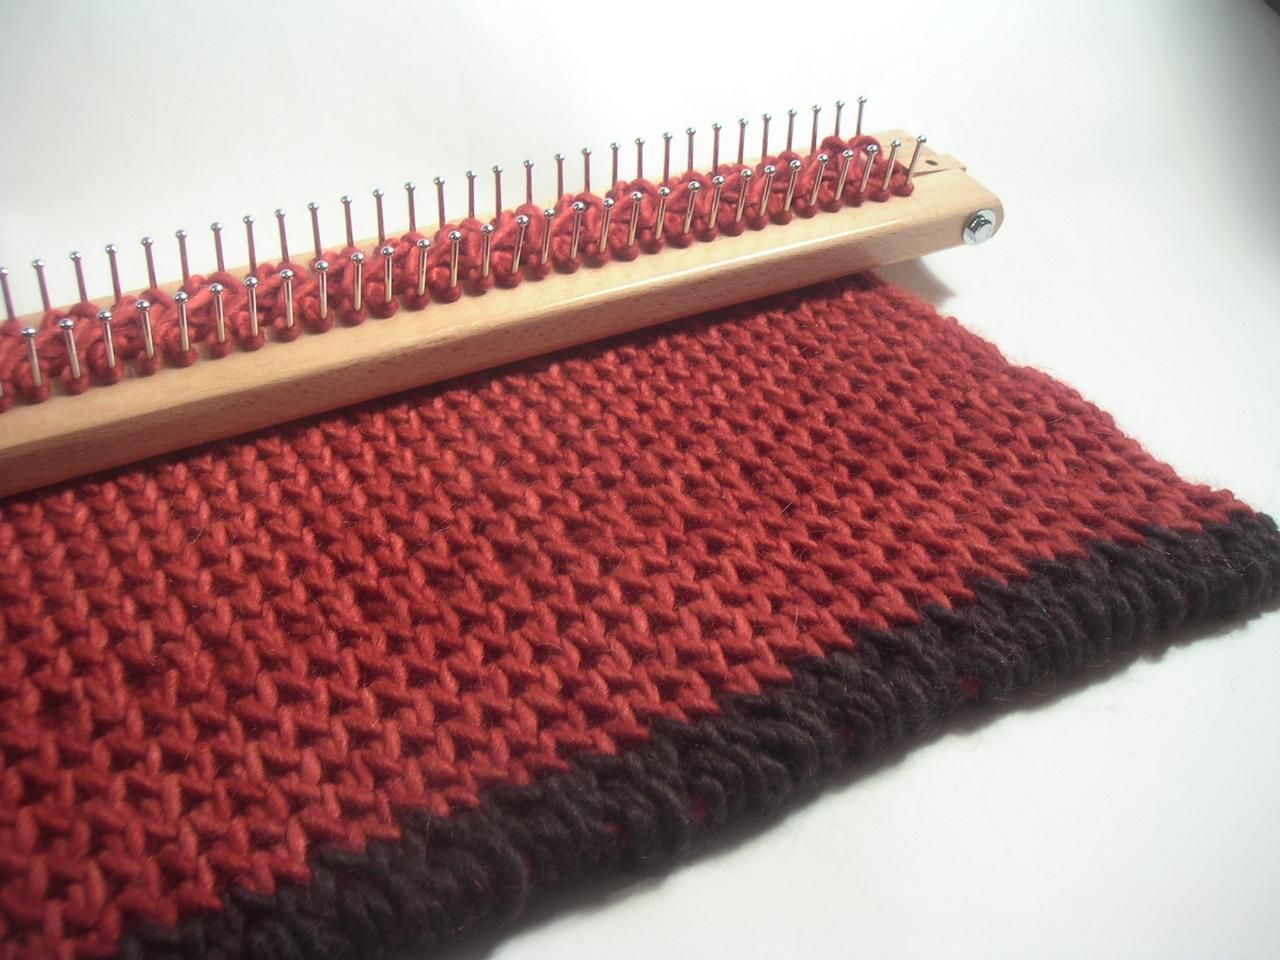 Knitting Loom Patterns : Free knitting board patterns with the new heavy duty